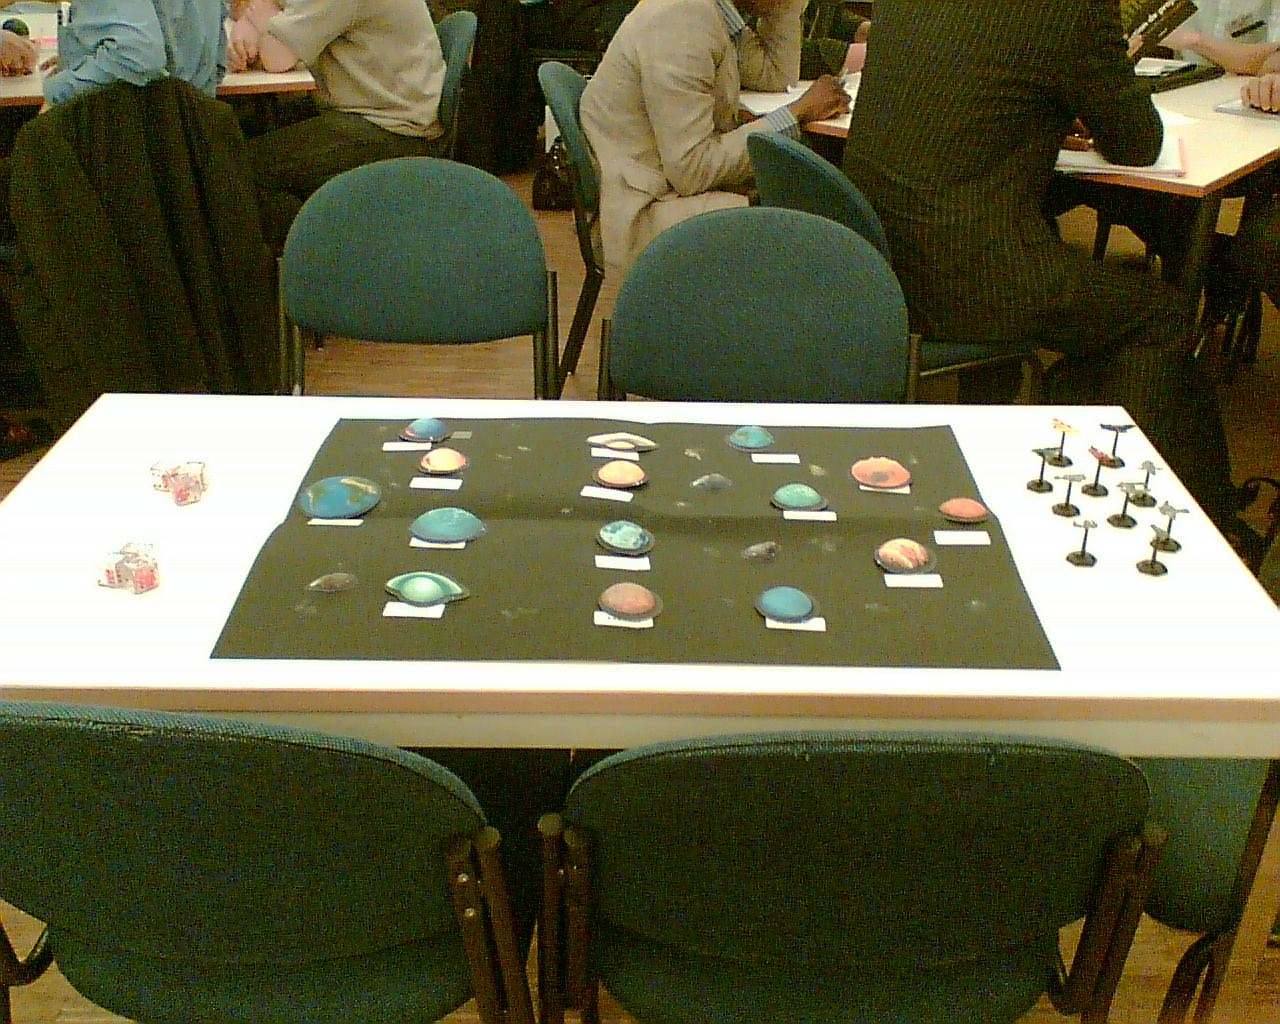 The space Game board before the start